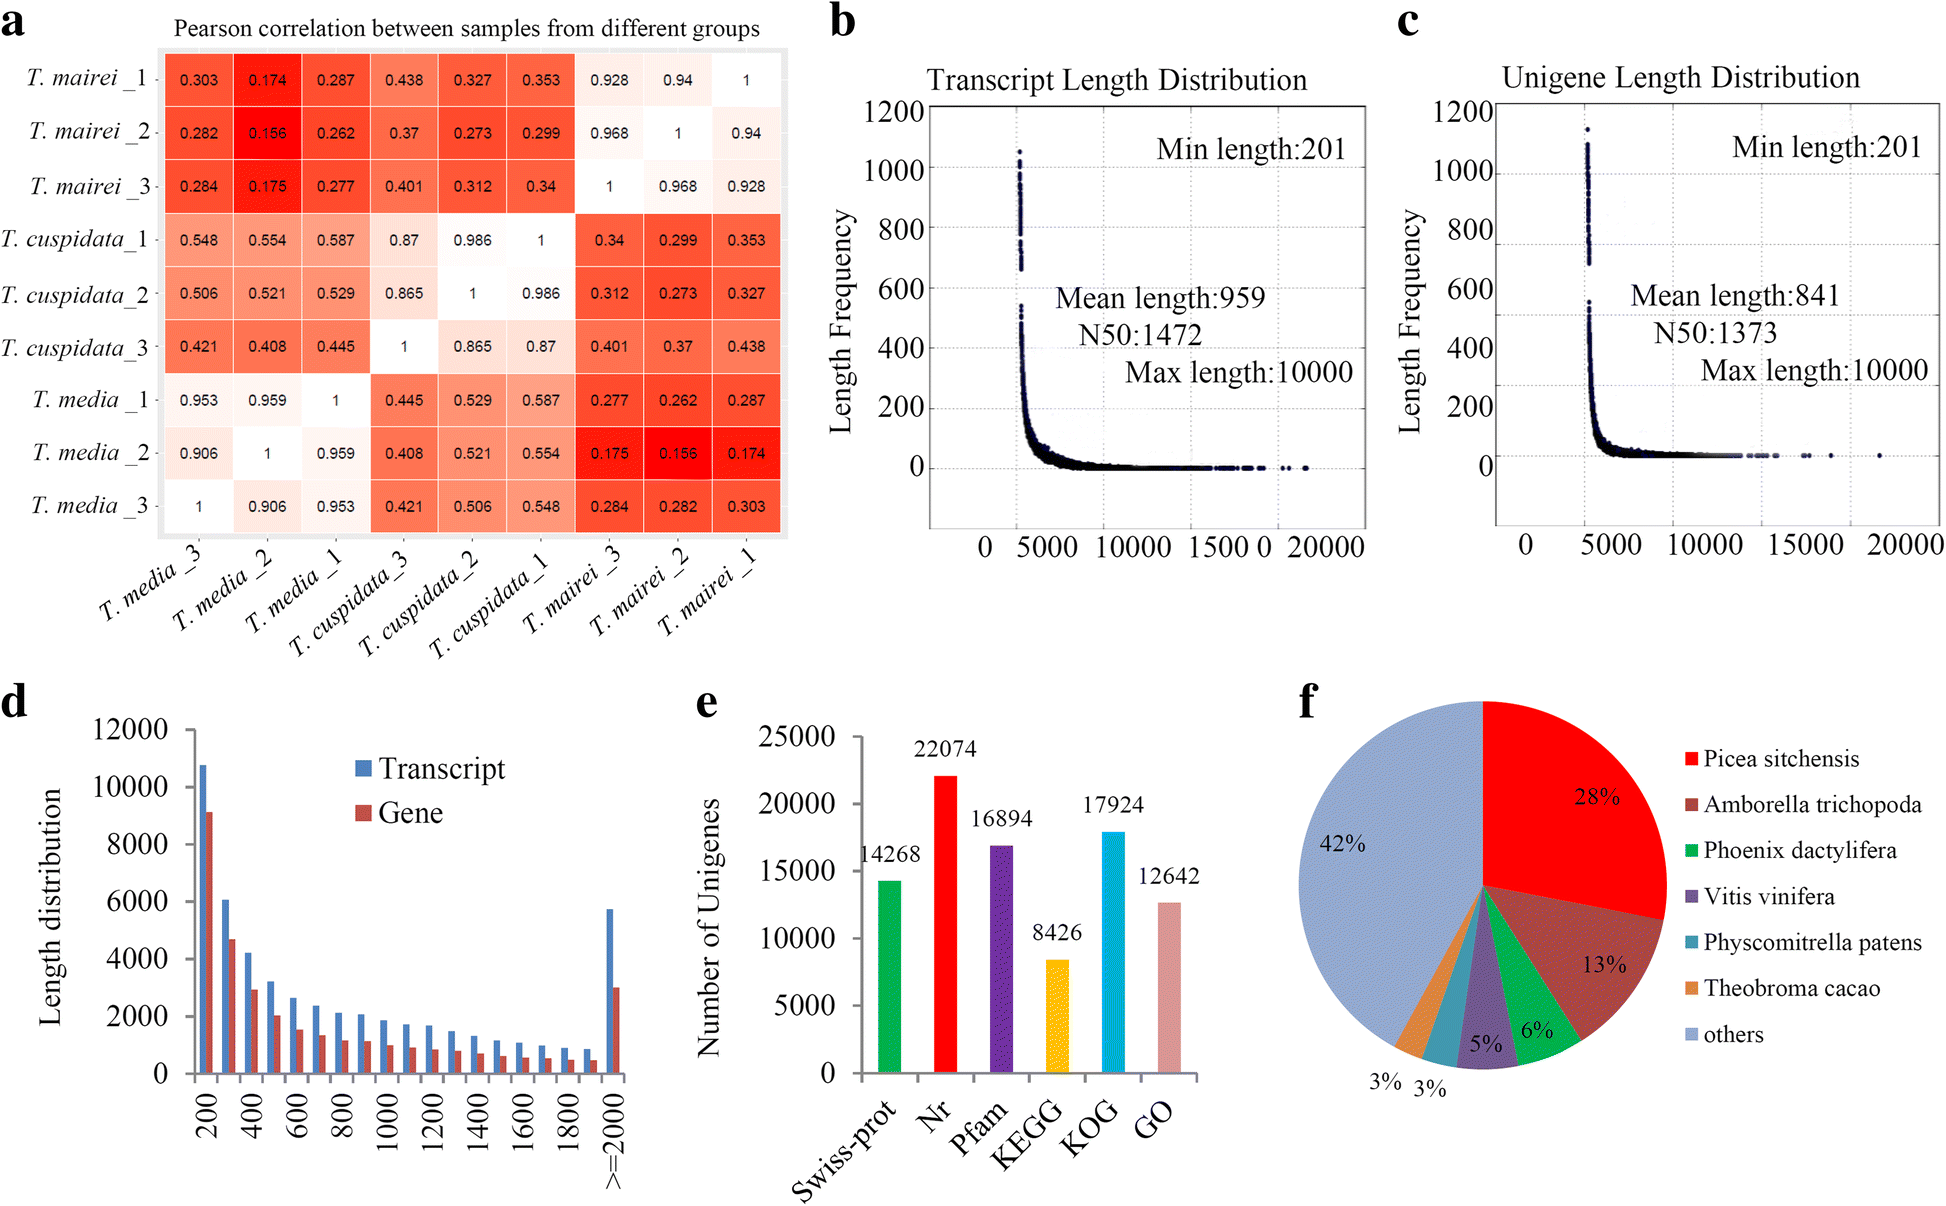 Transcriptome analyses provide insights into the expression